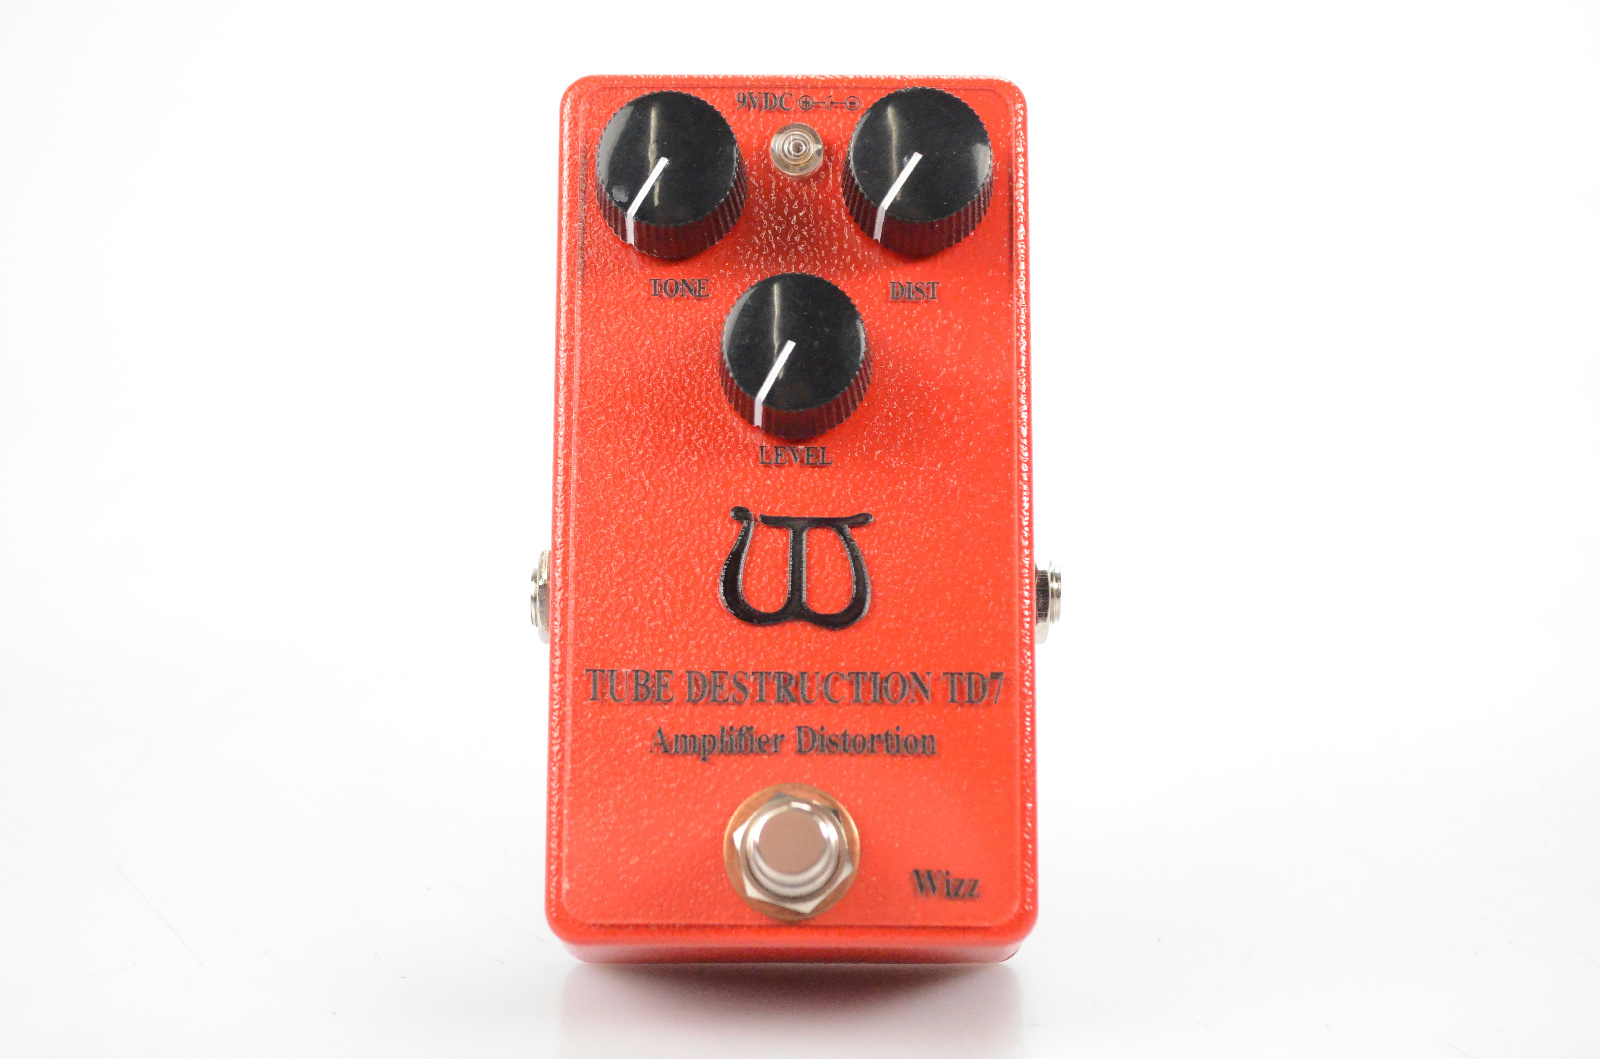 Wizz Tube Destruction TD7 Distortion Pedal w/ Box Owned by George Lynch #32453